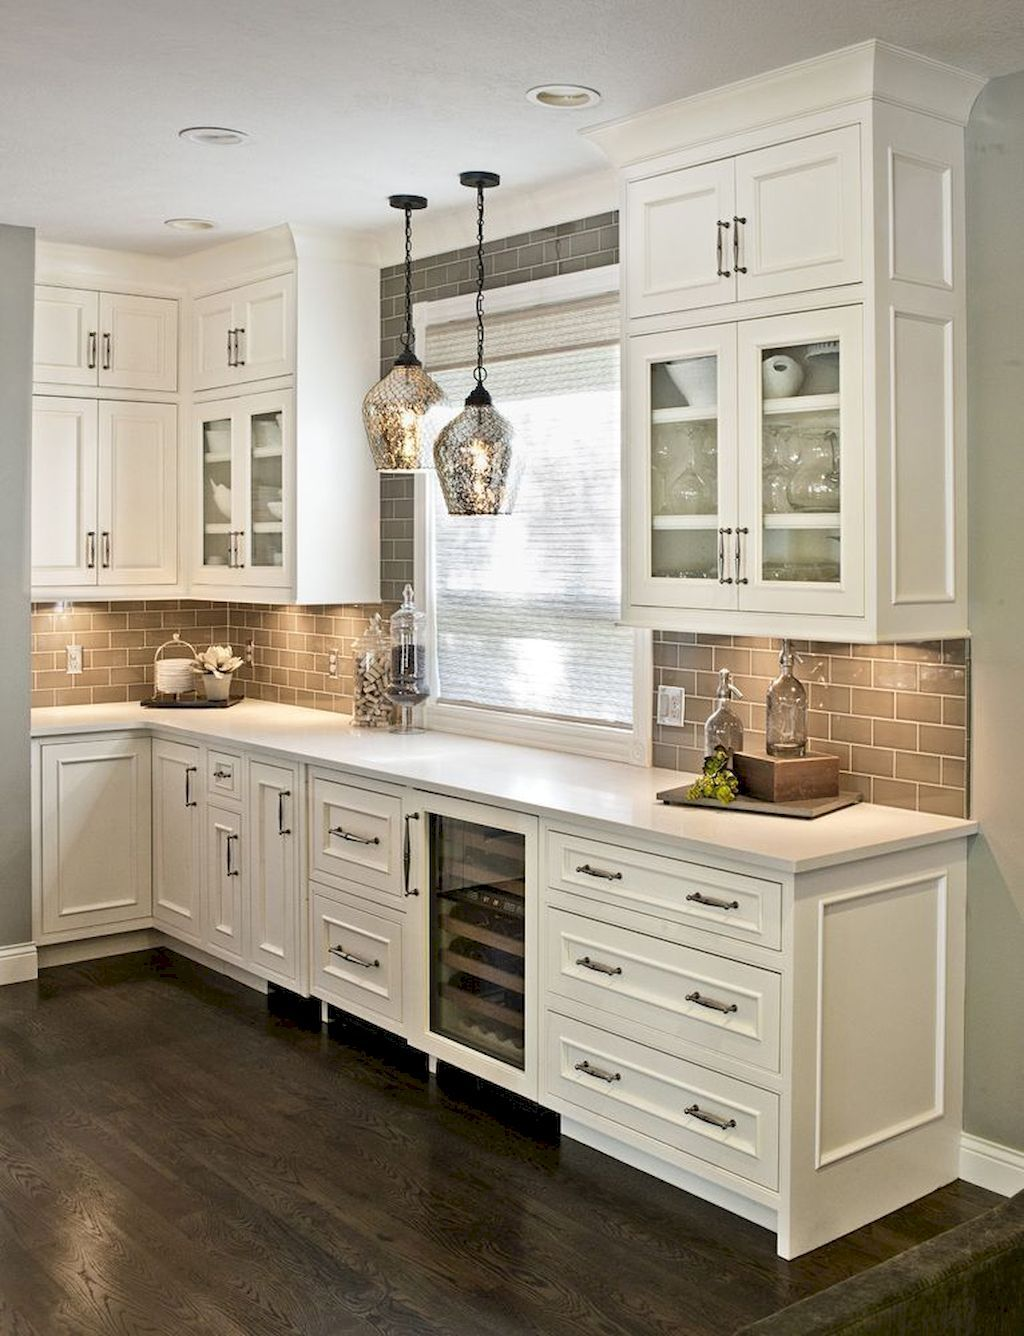 Adorable 65 Incredible Farmhouse Gray Kitchen Cabinet Design Ideas     Adorable 65 Incredible Farmhouse Gray Kitchen Cabinet Design Ideas  https   wholiving com